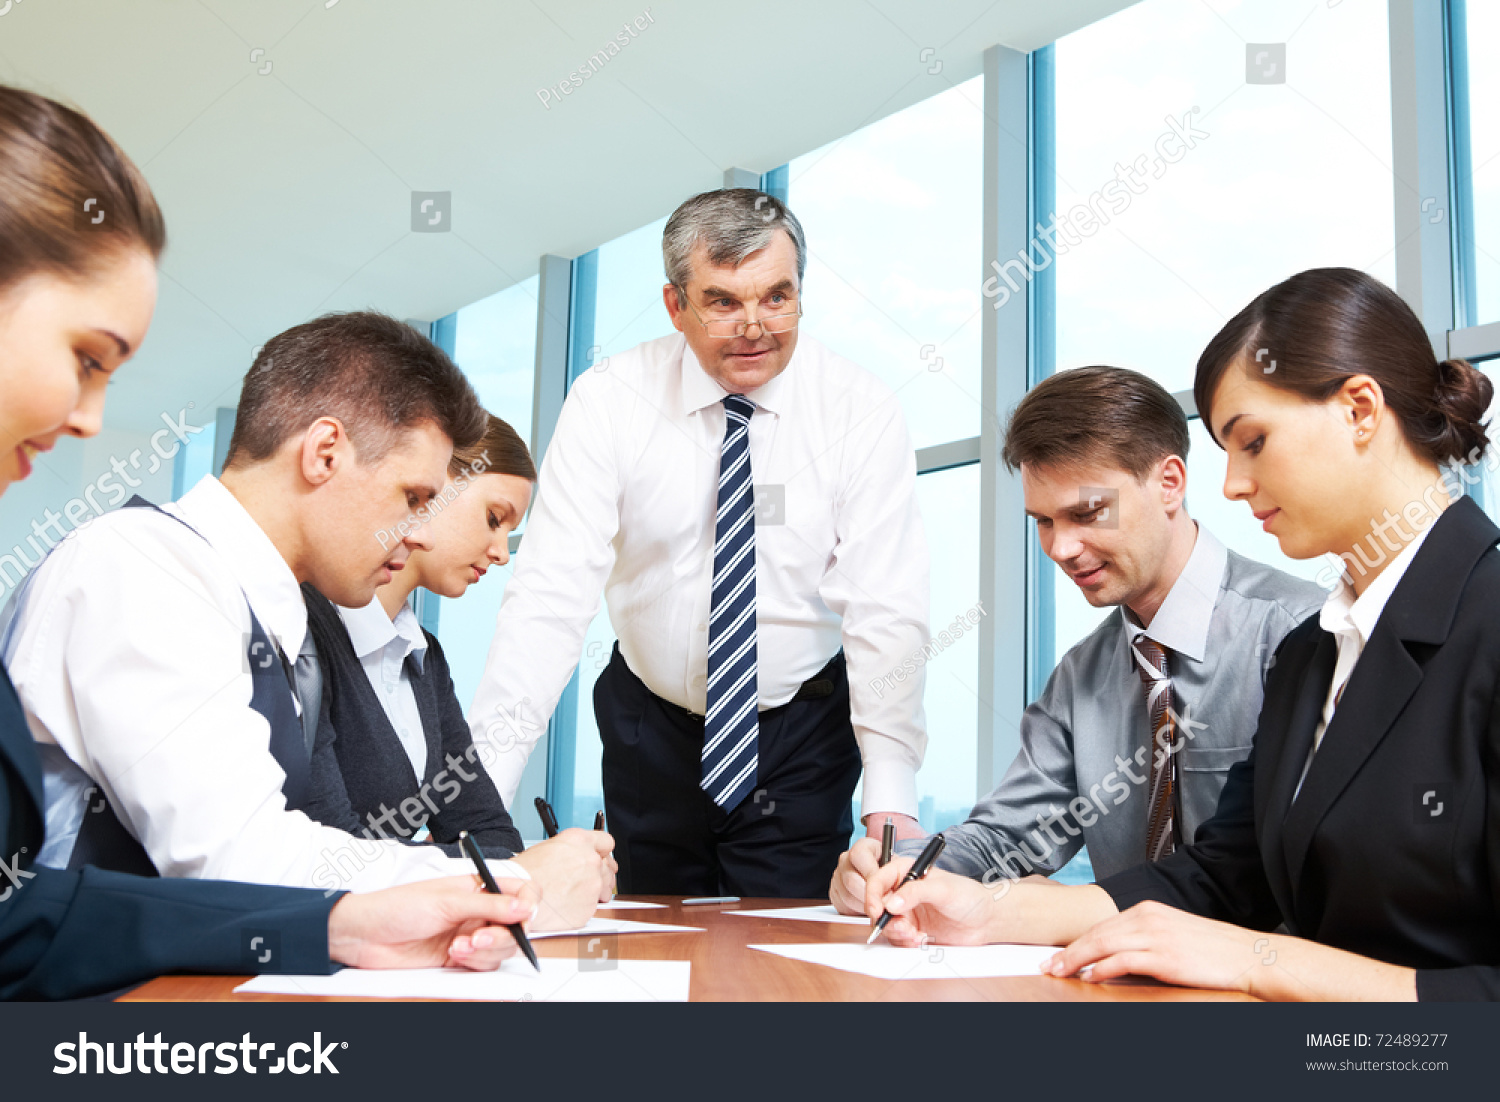 a management meeting essay Planning, governance and compliance committee management contents 1 why have committees 2 what is an effective committee 3 what is an ineffective committee 4 what does a committee secretary do 5 where should a secretary start 51 get familiar with your terms of reference 52 draw up a calendar of business 53.